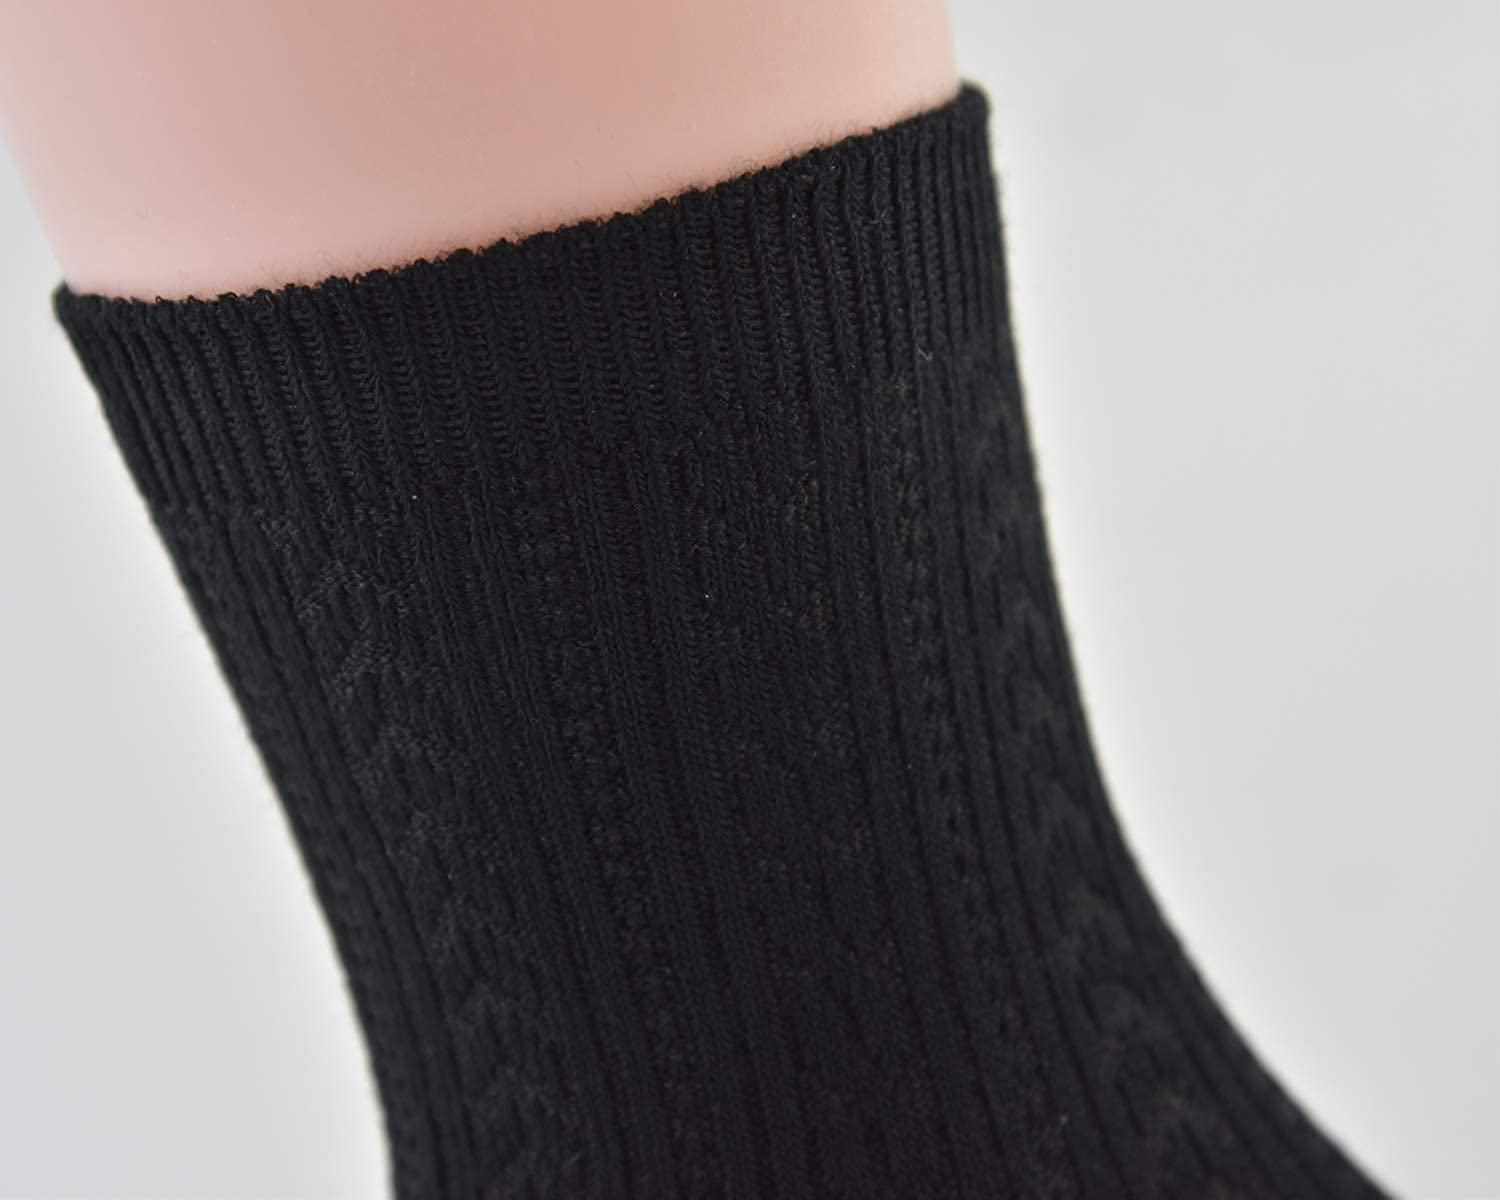 Super Soft and Comfortable High Ankle Socks 3 Pack Womens Cotton Casual Crew Socks